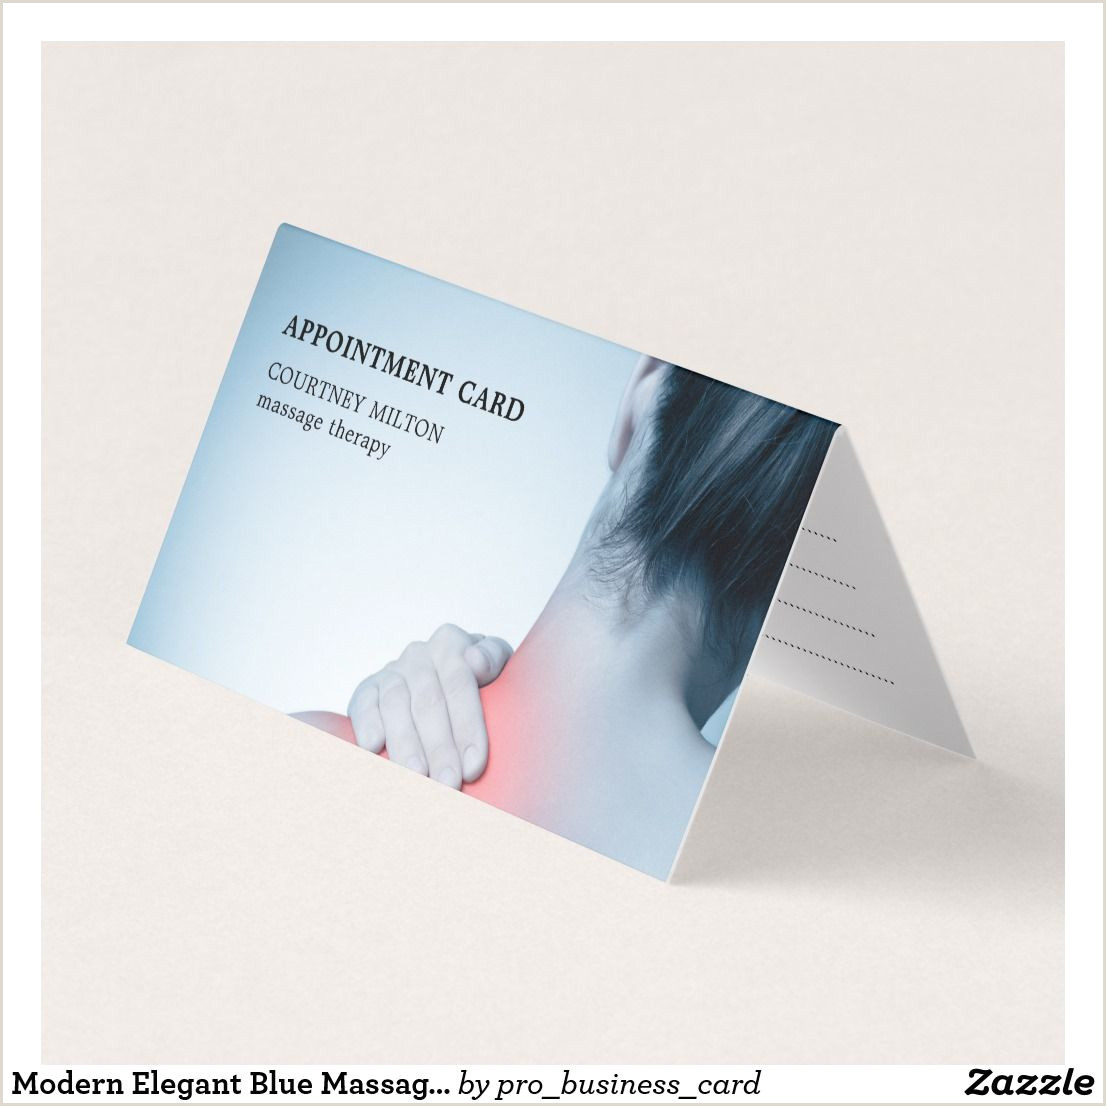 Massage Therapy Best Business Cards Modern Elegant Blue Massage Therapist Appointment